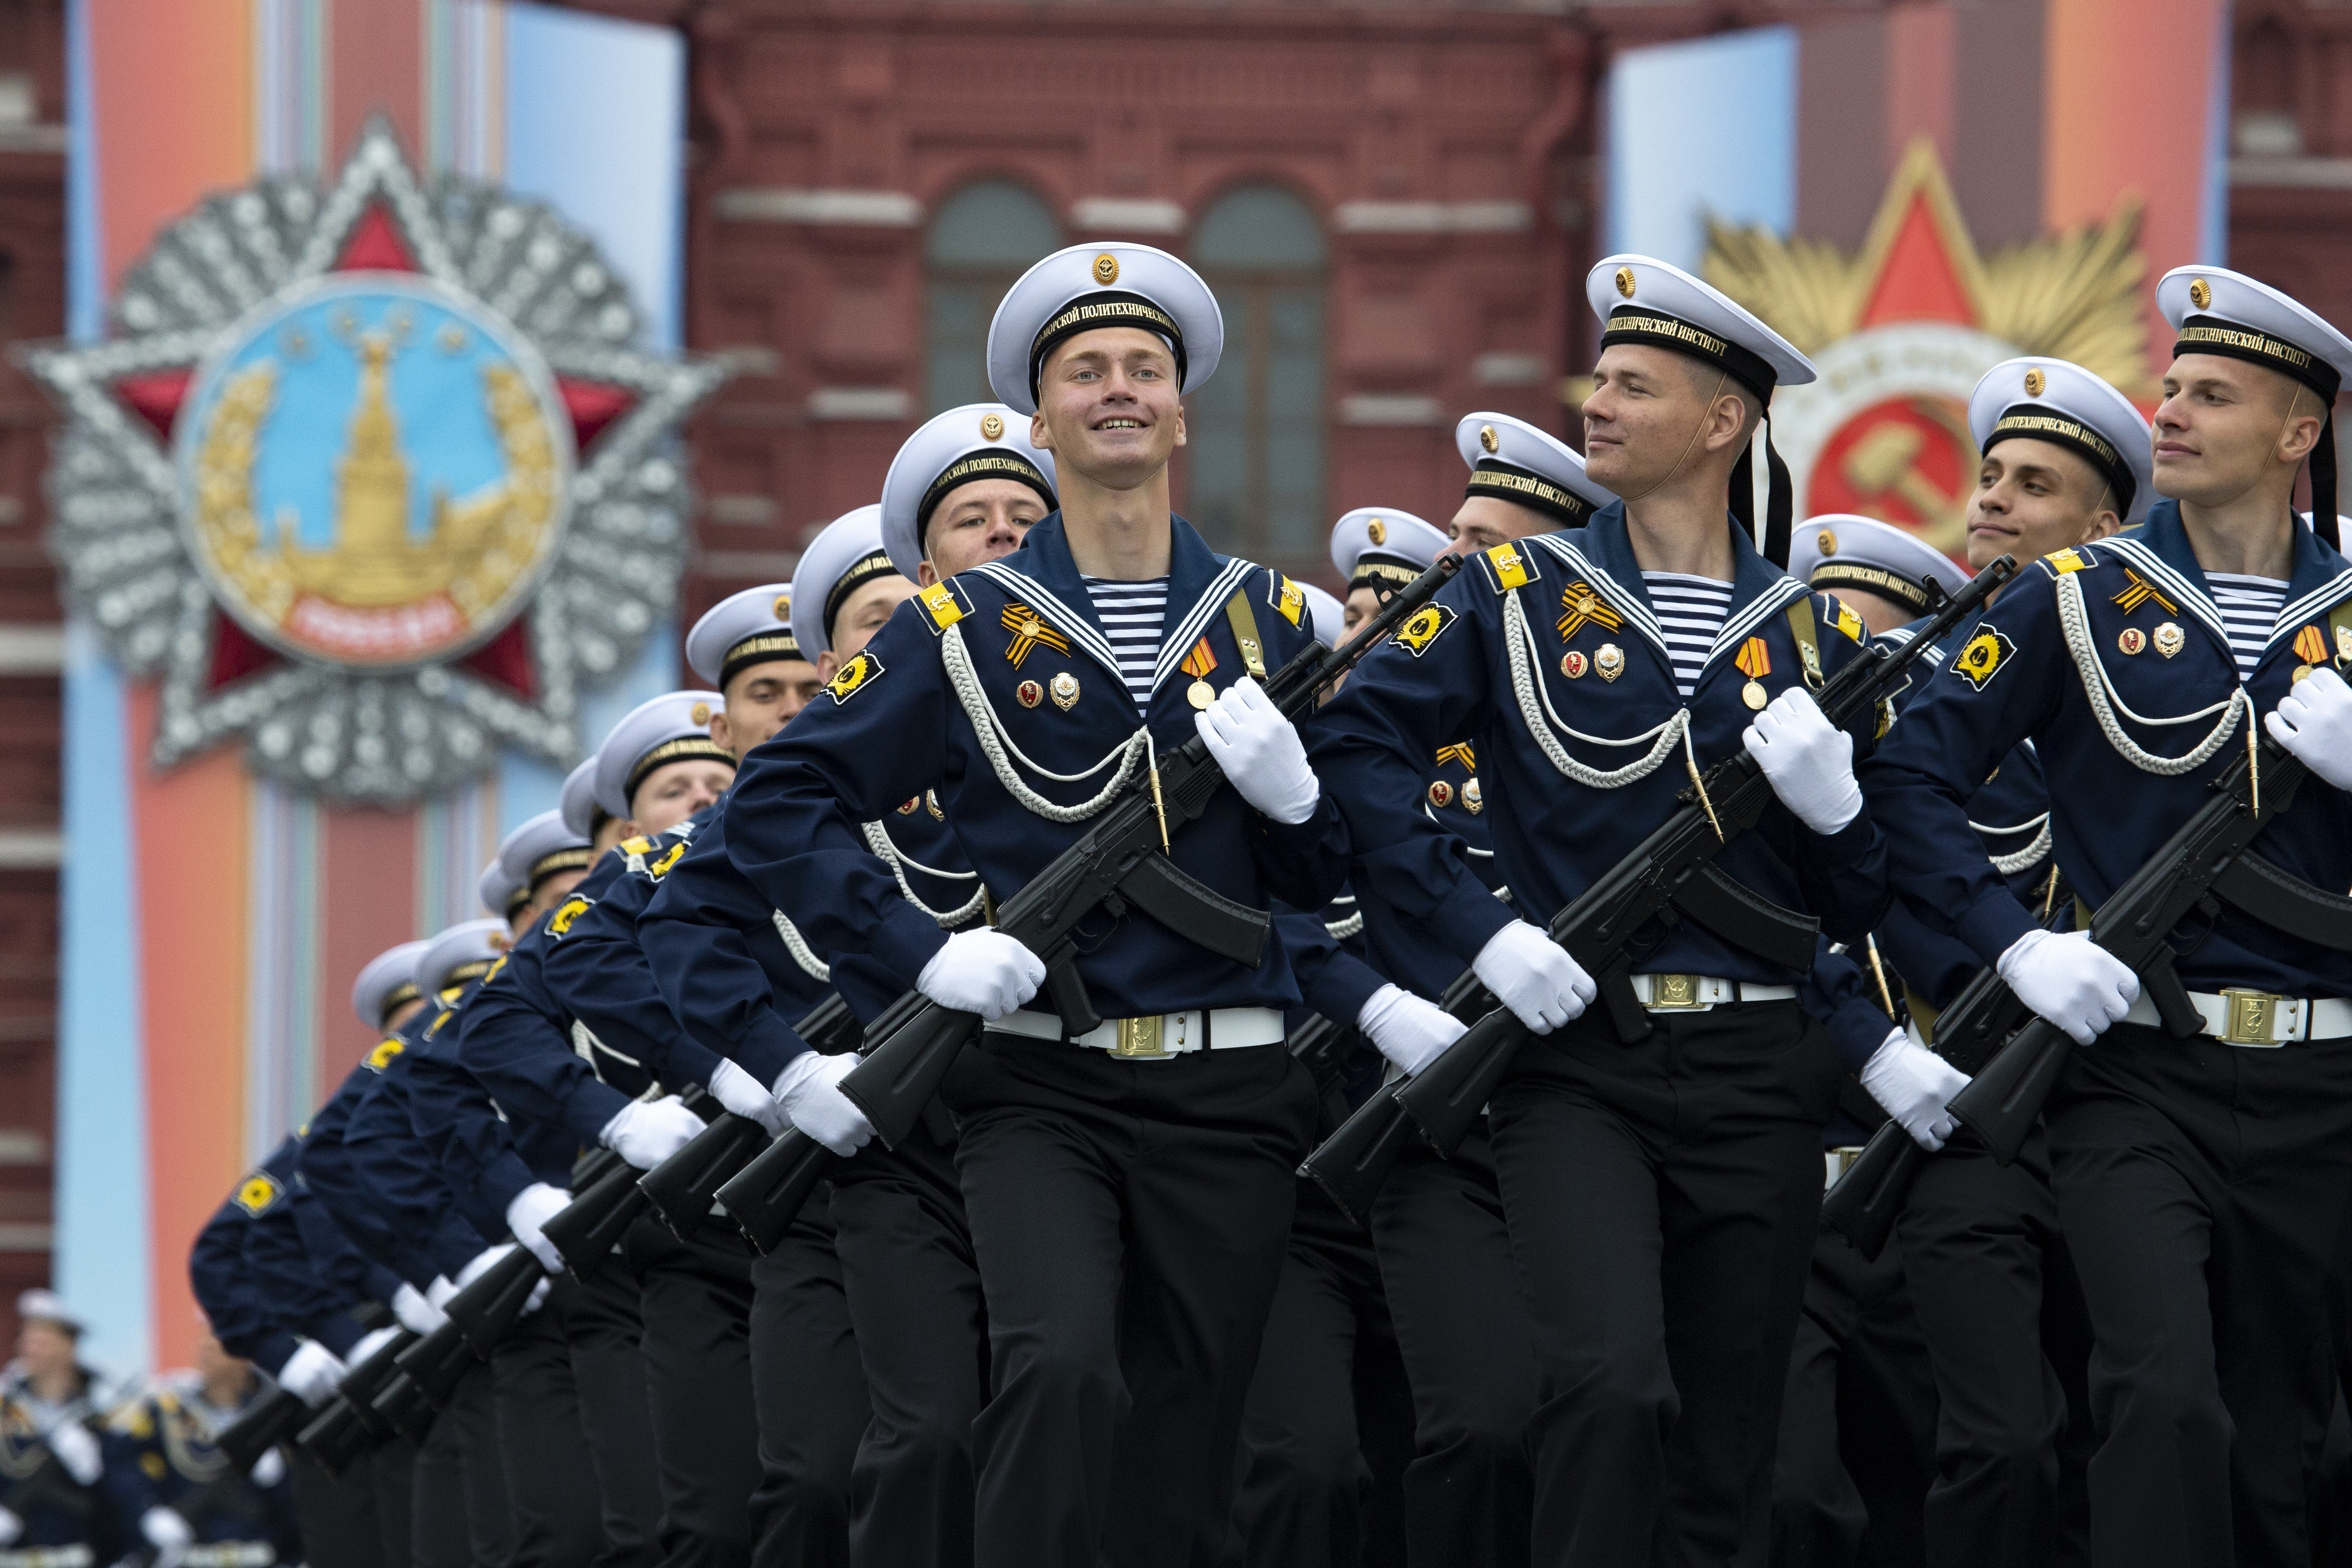 Russian troops march during the Victory Day military parade to celebrate 74 years since the victory in WWII in Red Square in Moscow, Russia, Thursday, May 9, 2019. (Putin has told the annual military Victory Day parade in Red Square that the country will continue to strengthen its armed forces. AP Photo/Alexander Zemlianichenko)